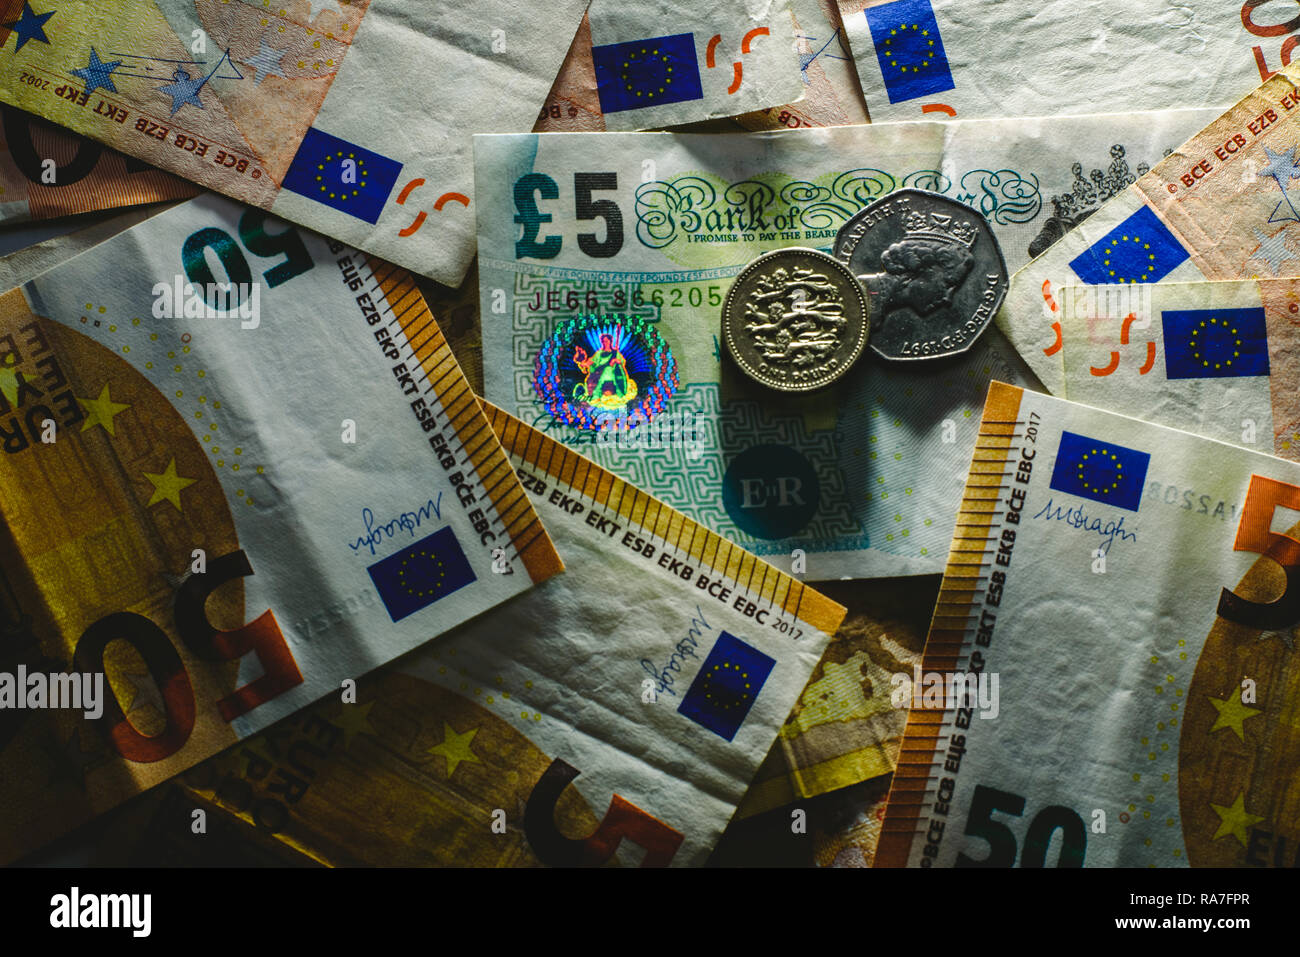 1 Libra Euros Currencies Euro Pound Dollar Note Imágenes De Stock Currencies